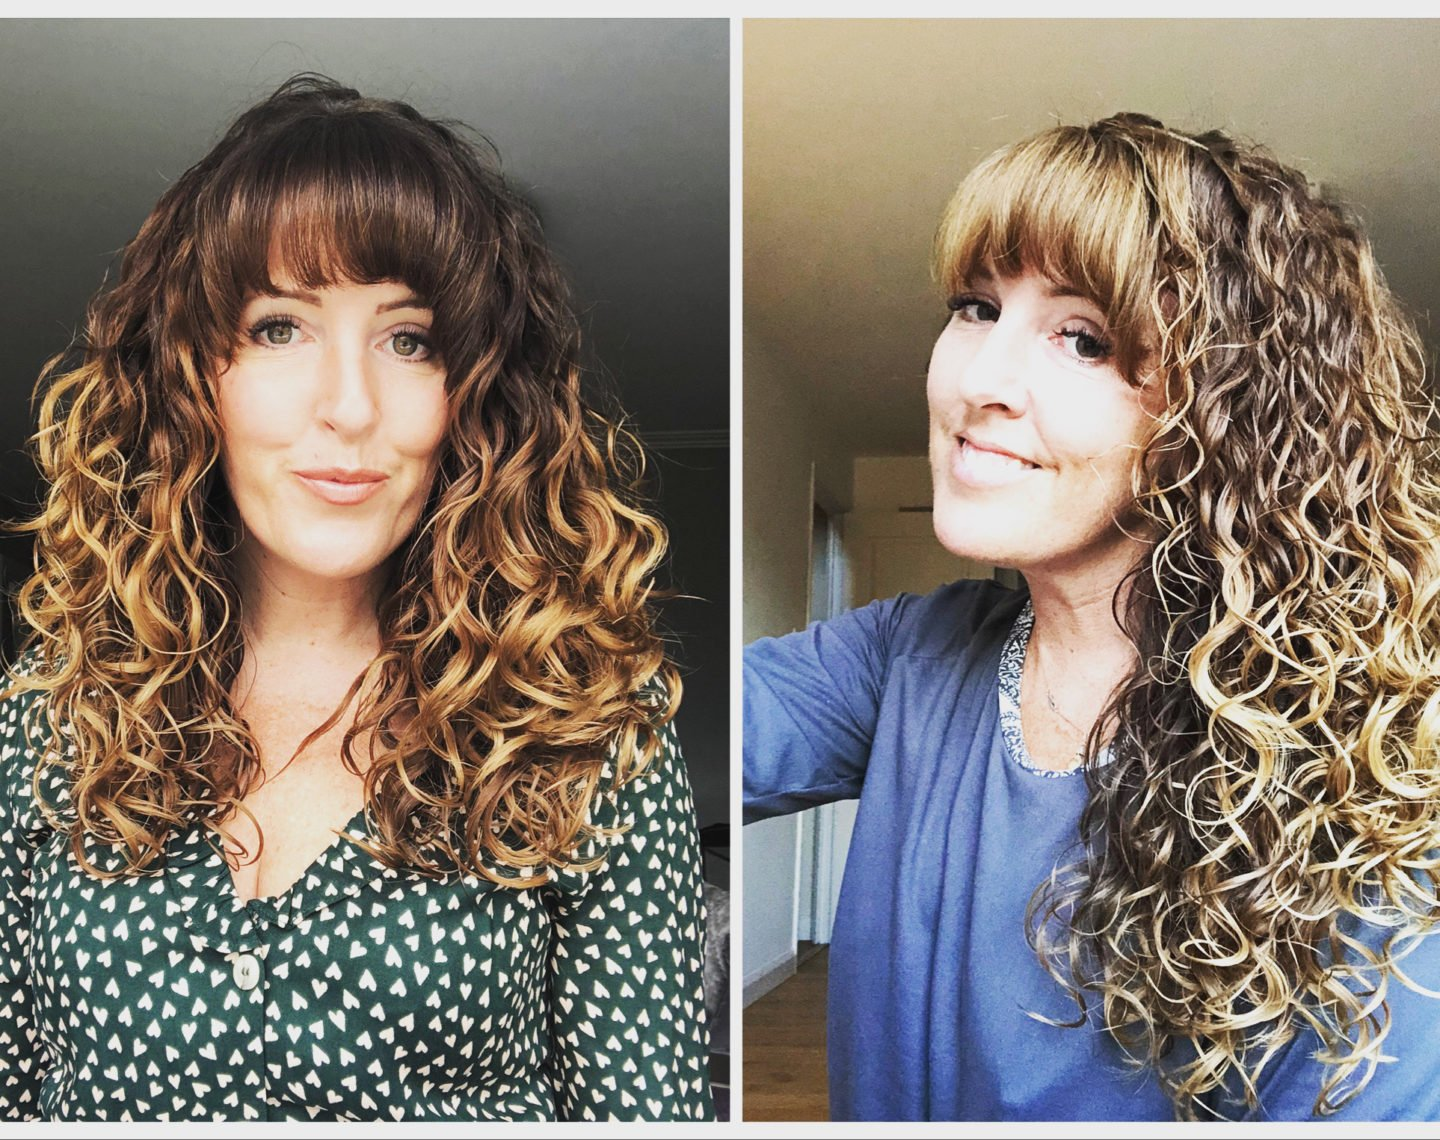 This photo shows my hair growth in six months so the curly girl method and taking care of my hair is certainly doing something.